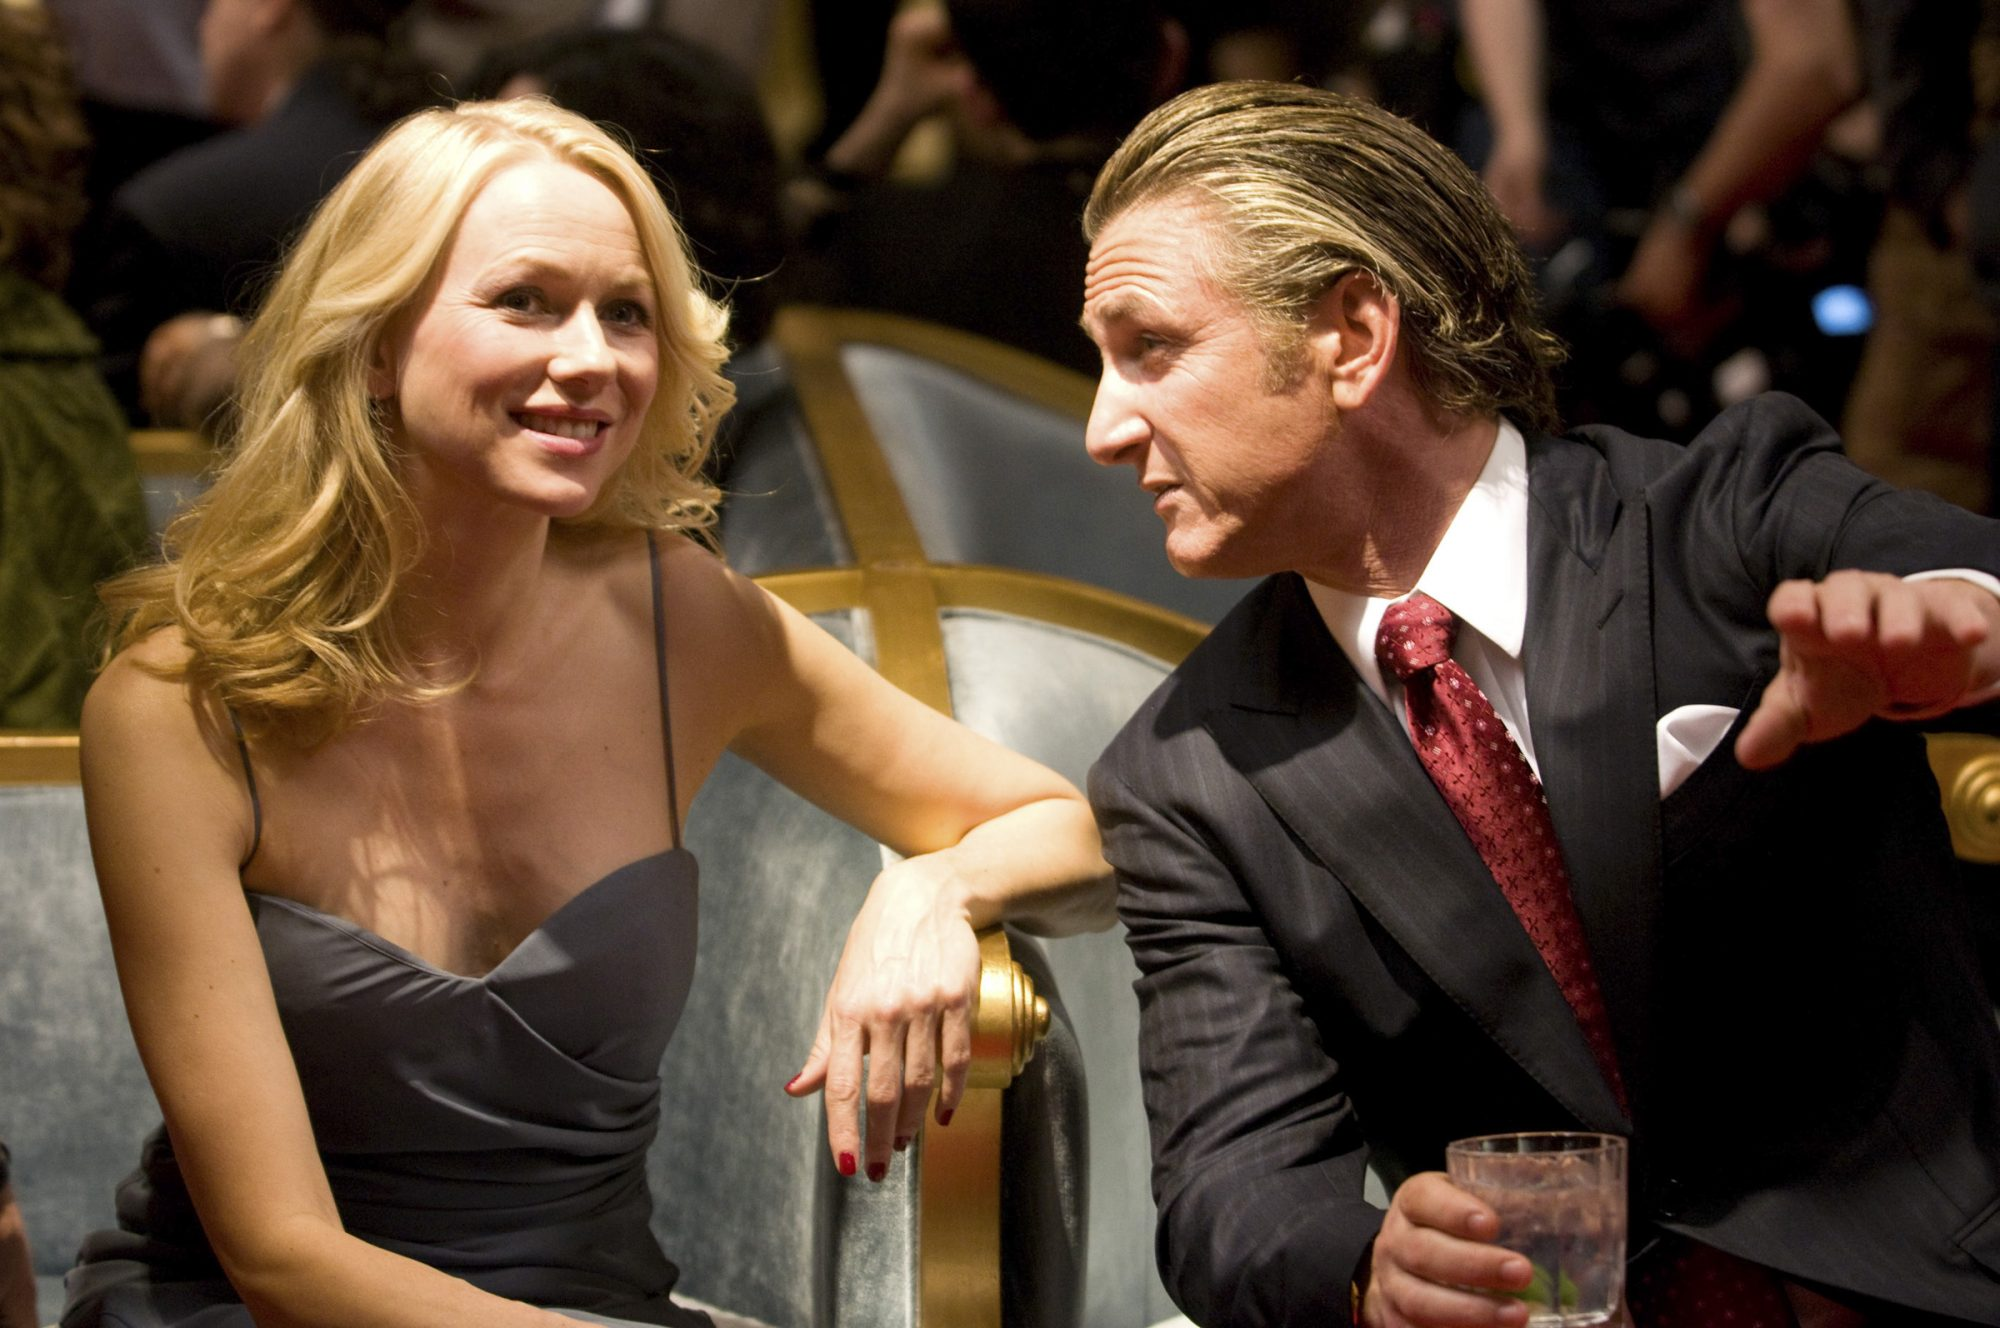 FAIR GAME, from left: Naomi Watts, Sean Penn, 2010. ©Summit Entertainment/Courtesy Everett Collectio